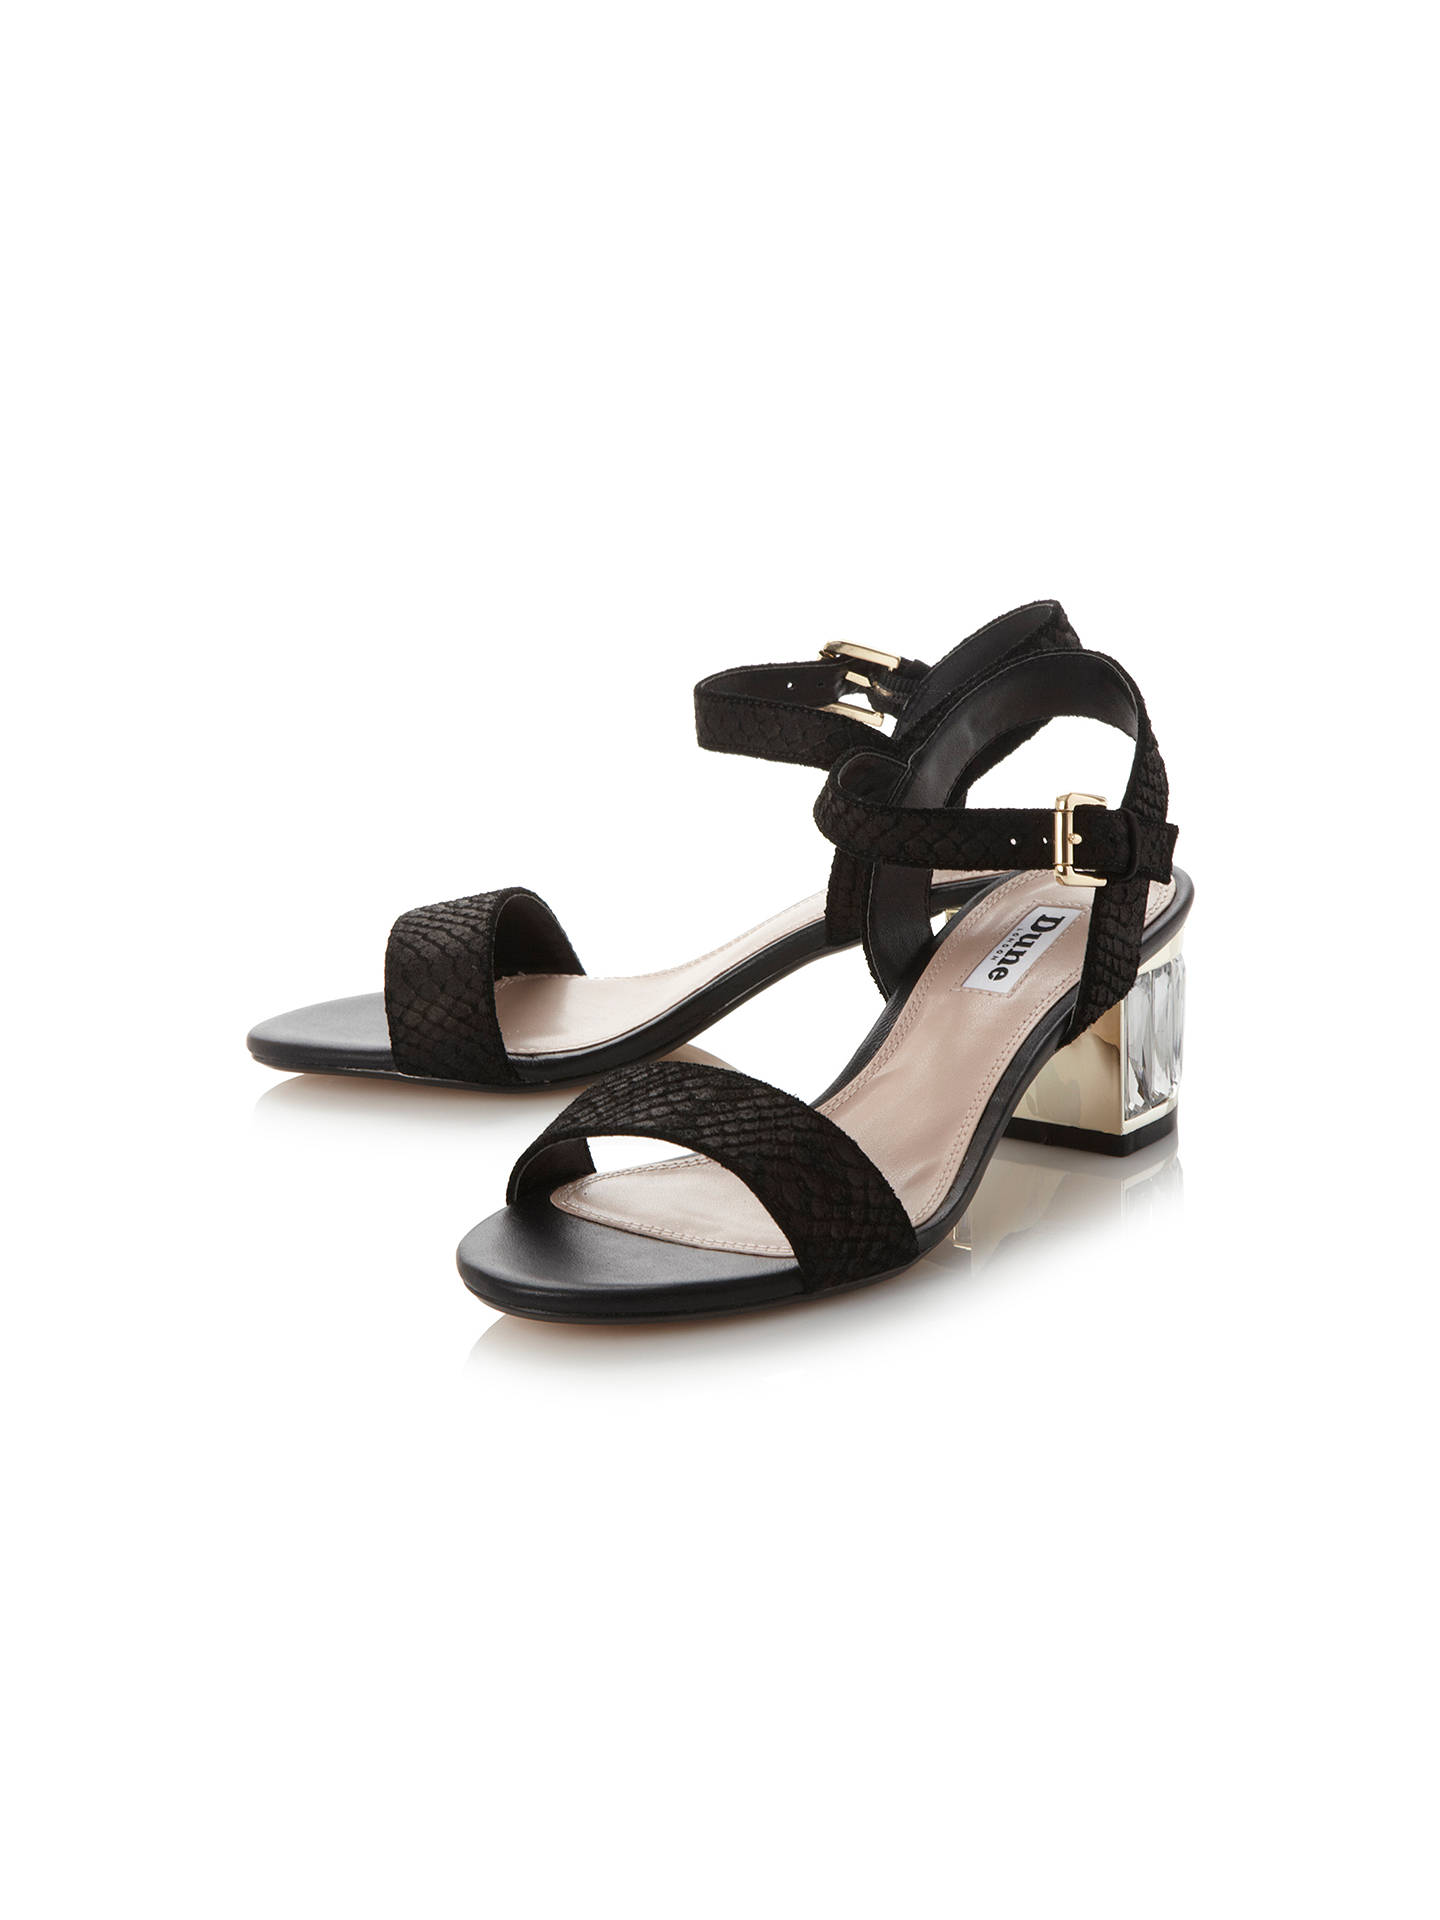 f1bed7c24 Dune Marcia Jewelled Block Heel Sandals at John Lewis   Partners